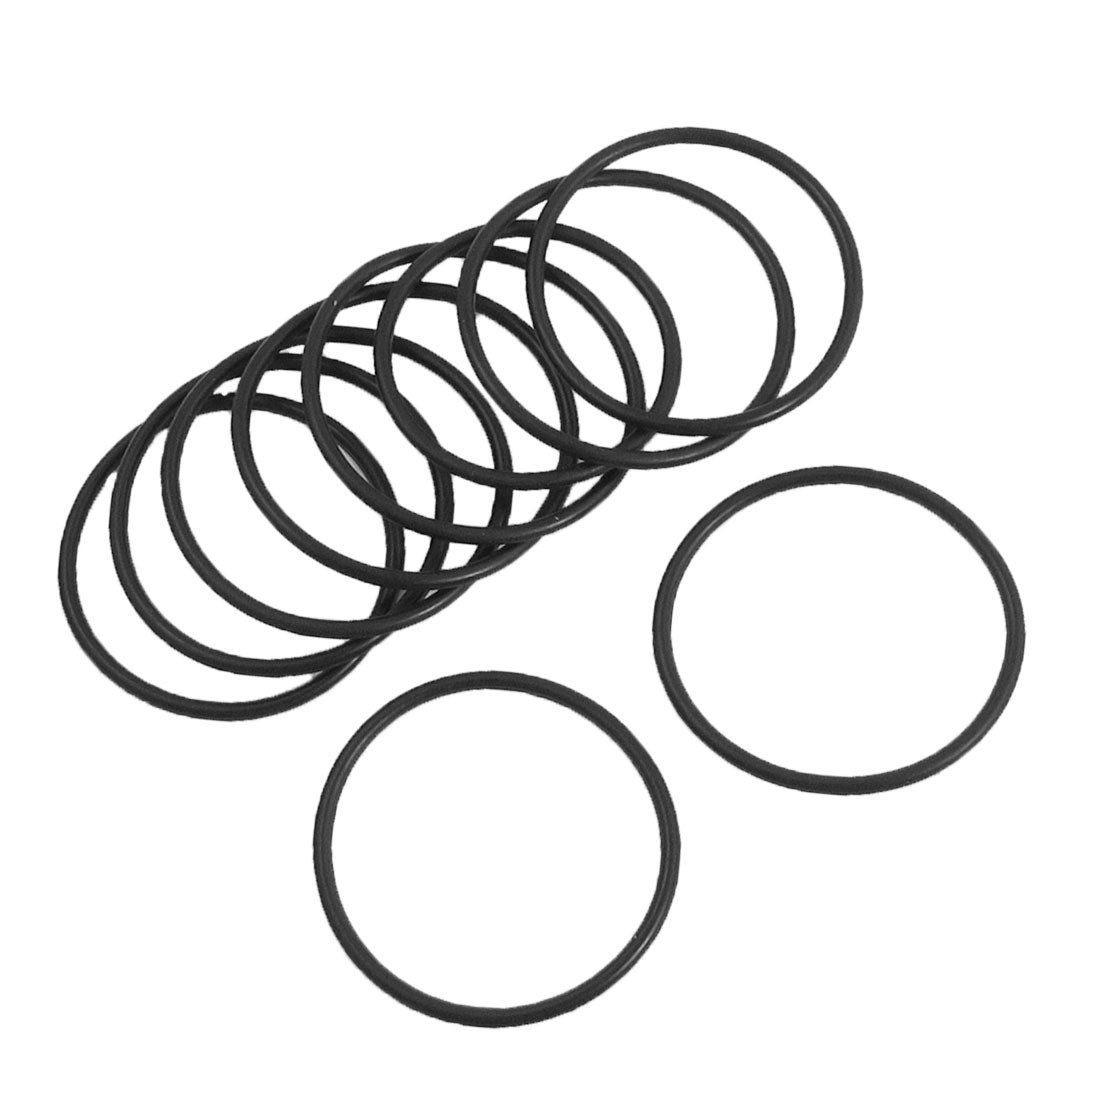 10PCS 45mm Outside Dia 2.5mm Thickness Rubber Oil Filter Seal Gasket O Rings